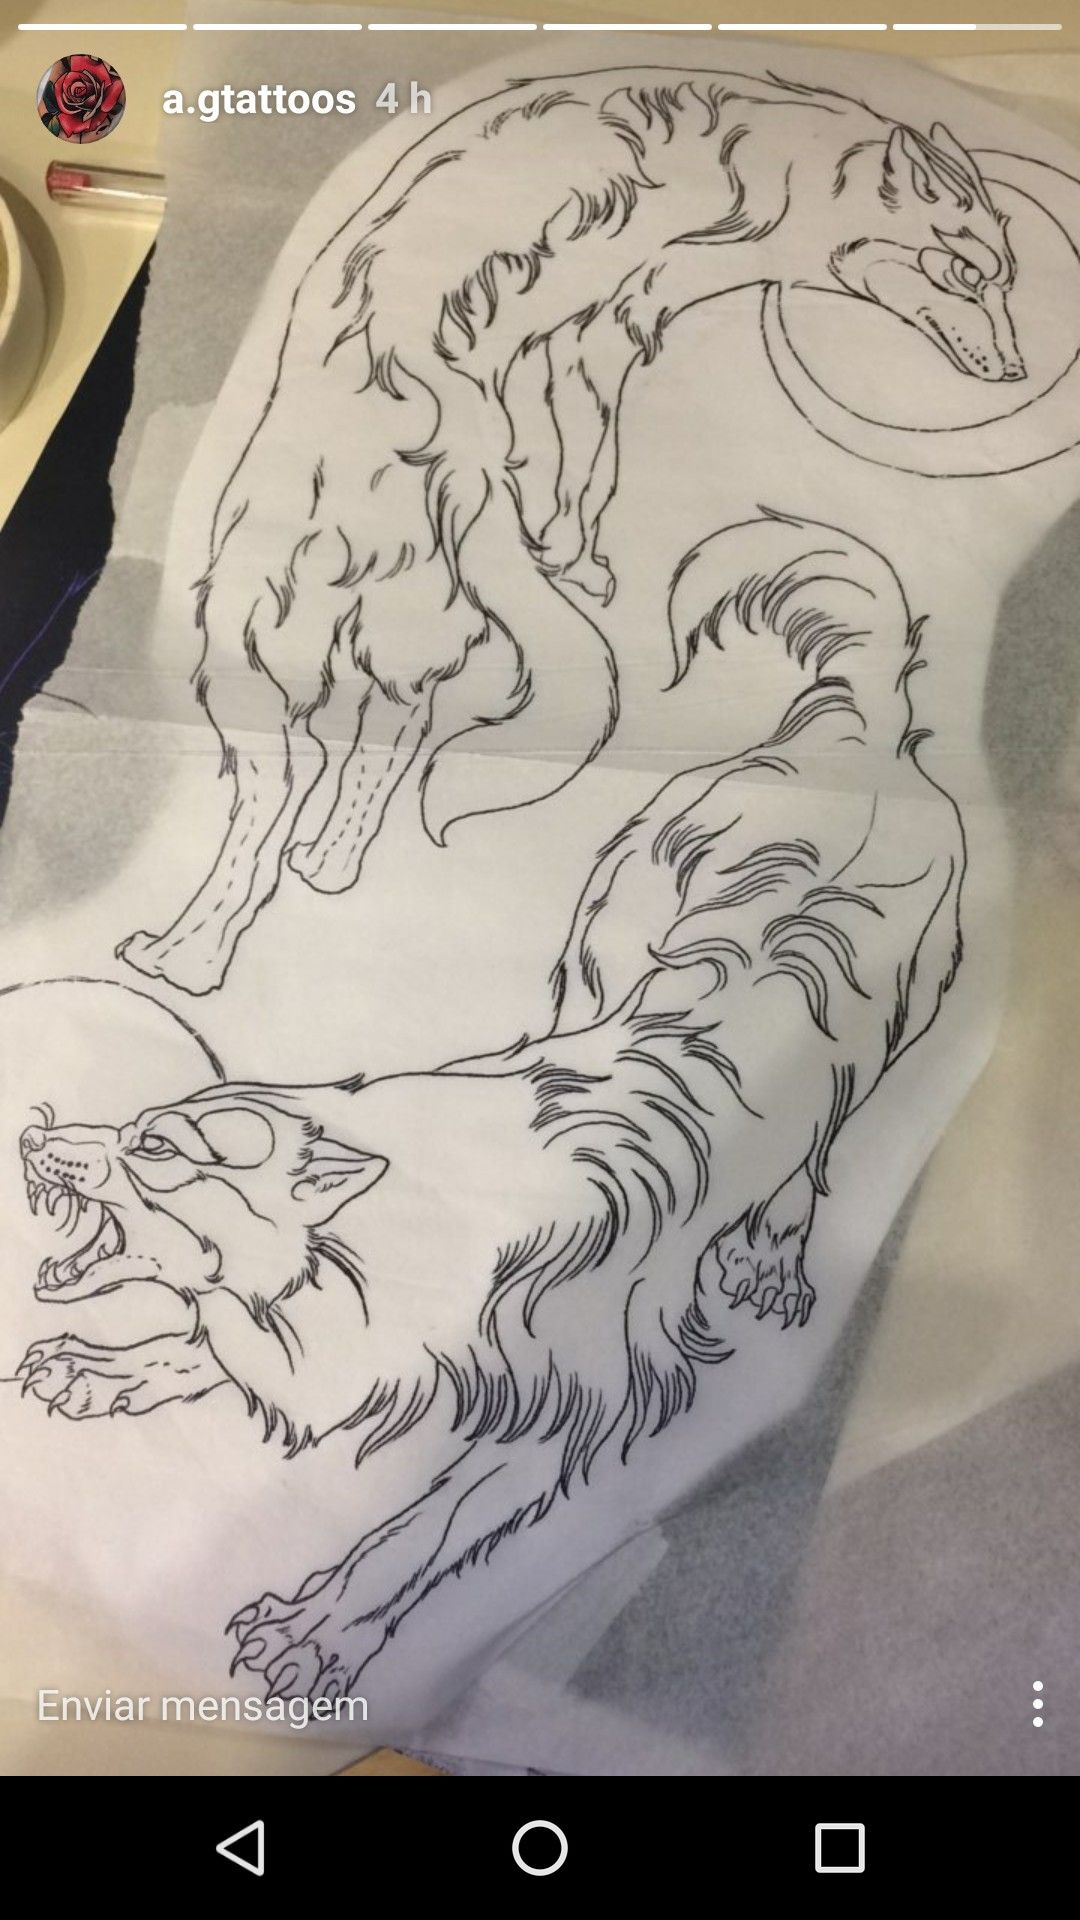 d38c02a11 Skoll e Hati | Tattoos | Wolf tattoos, Werewolf tattoo, Fighting tattoo